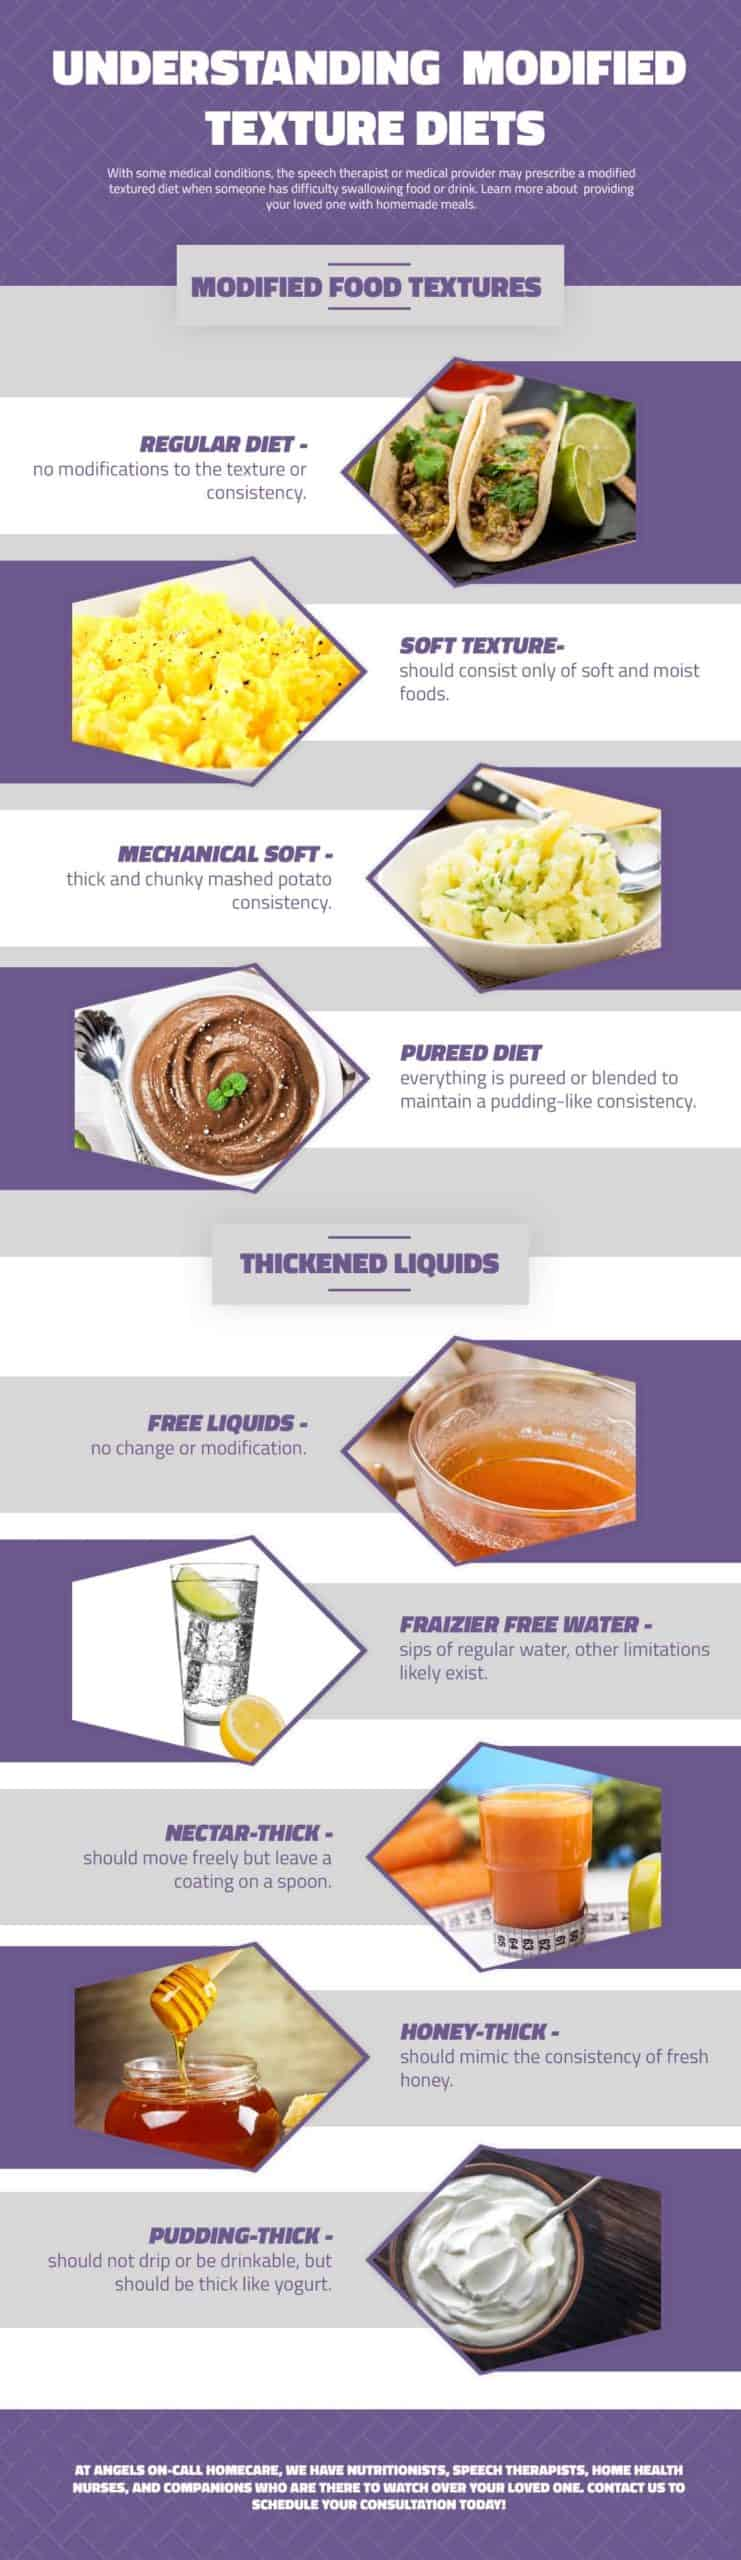 How-to-Adjust-Life-at-Home-Modified-Texture-Diets